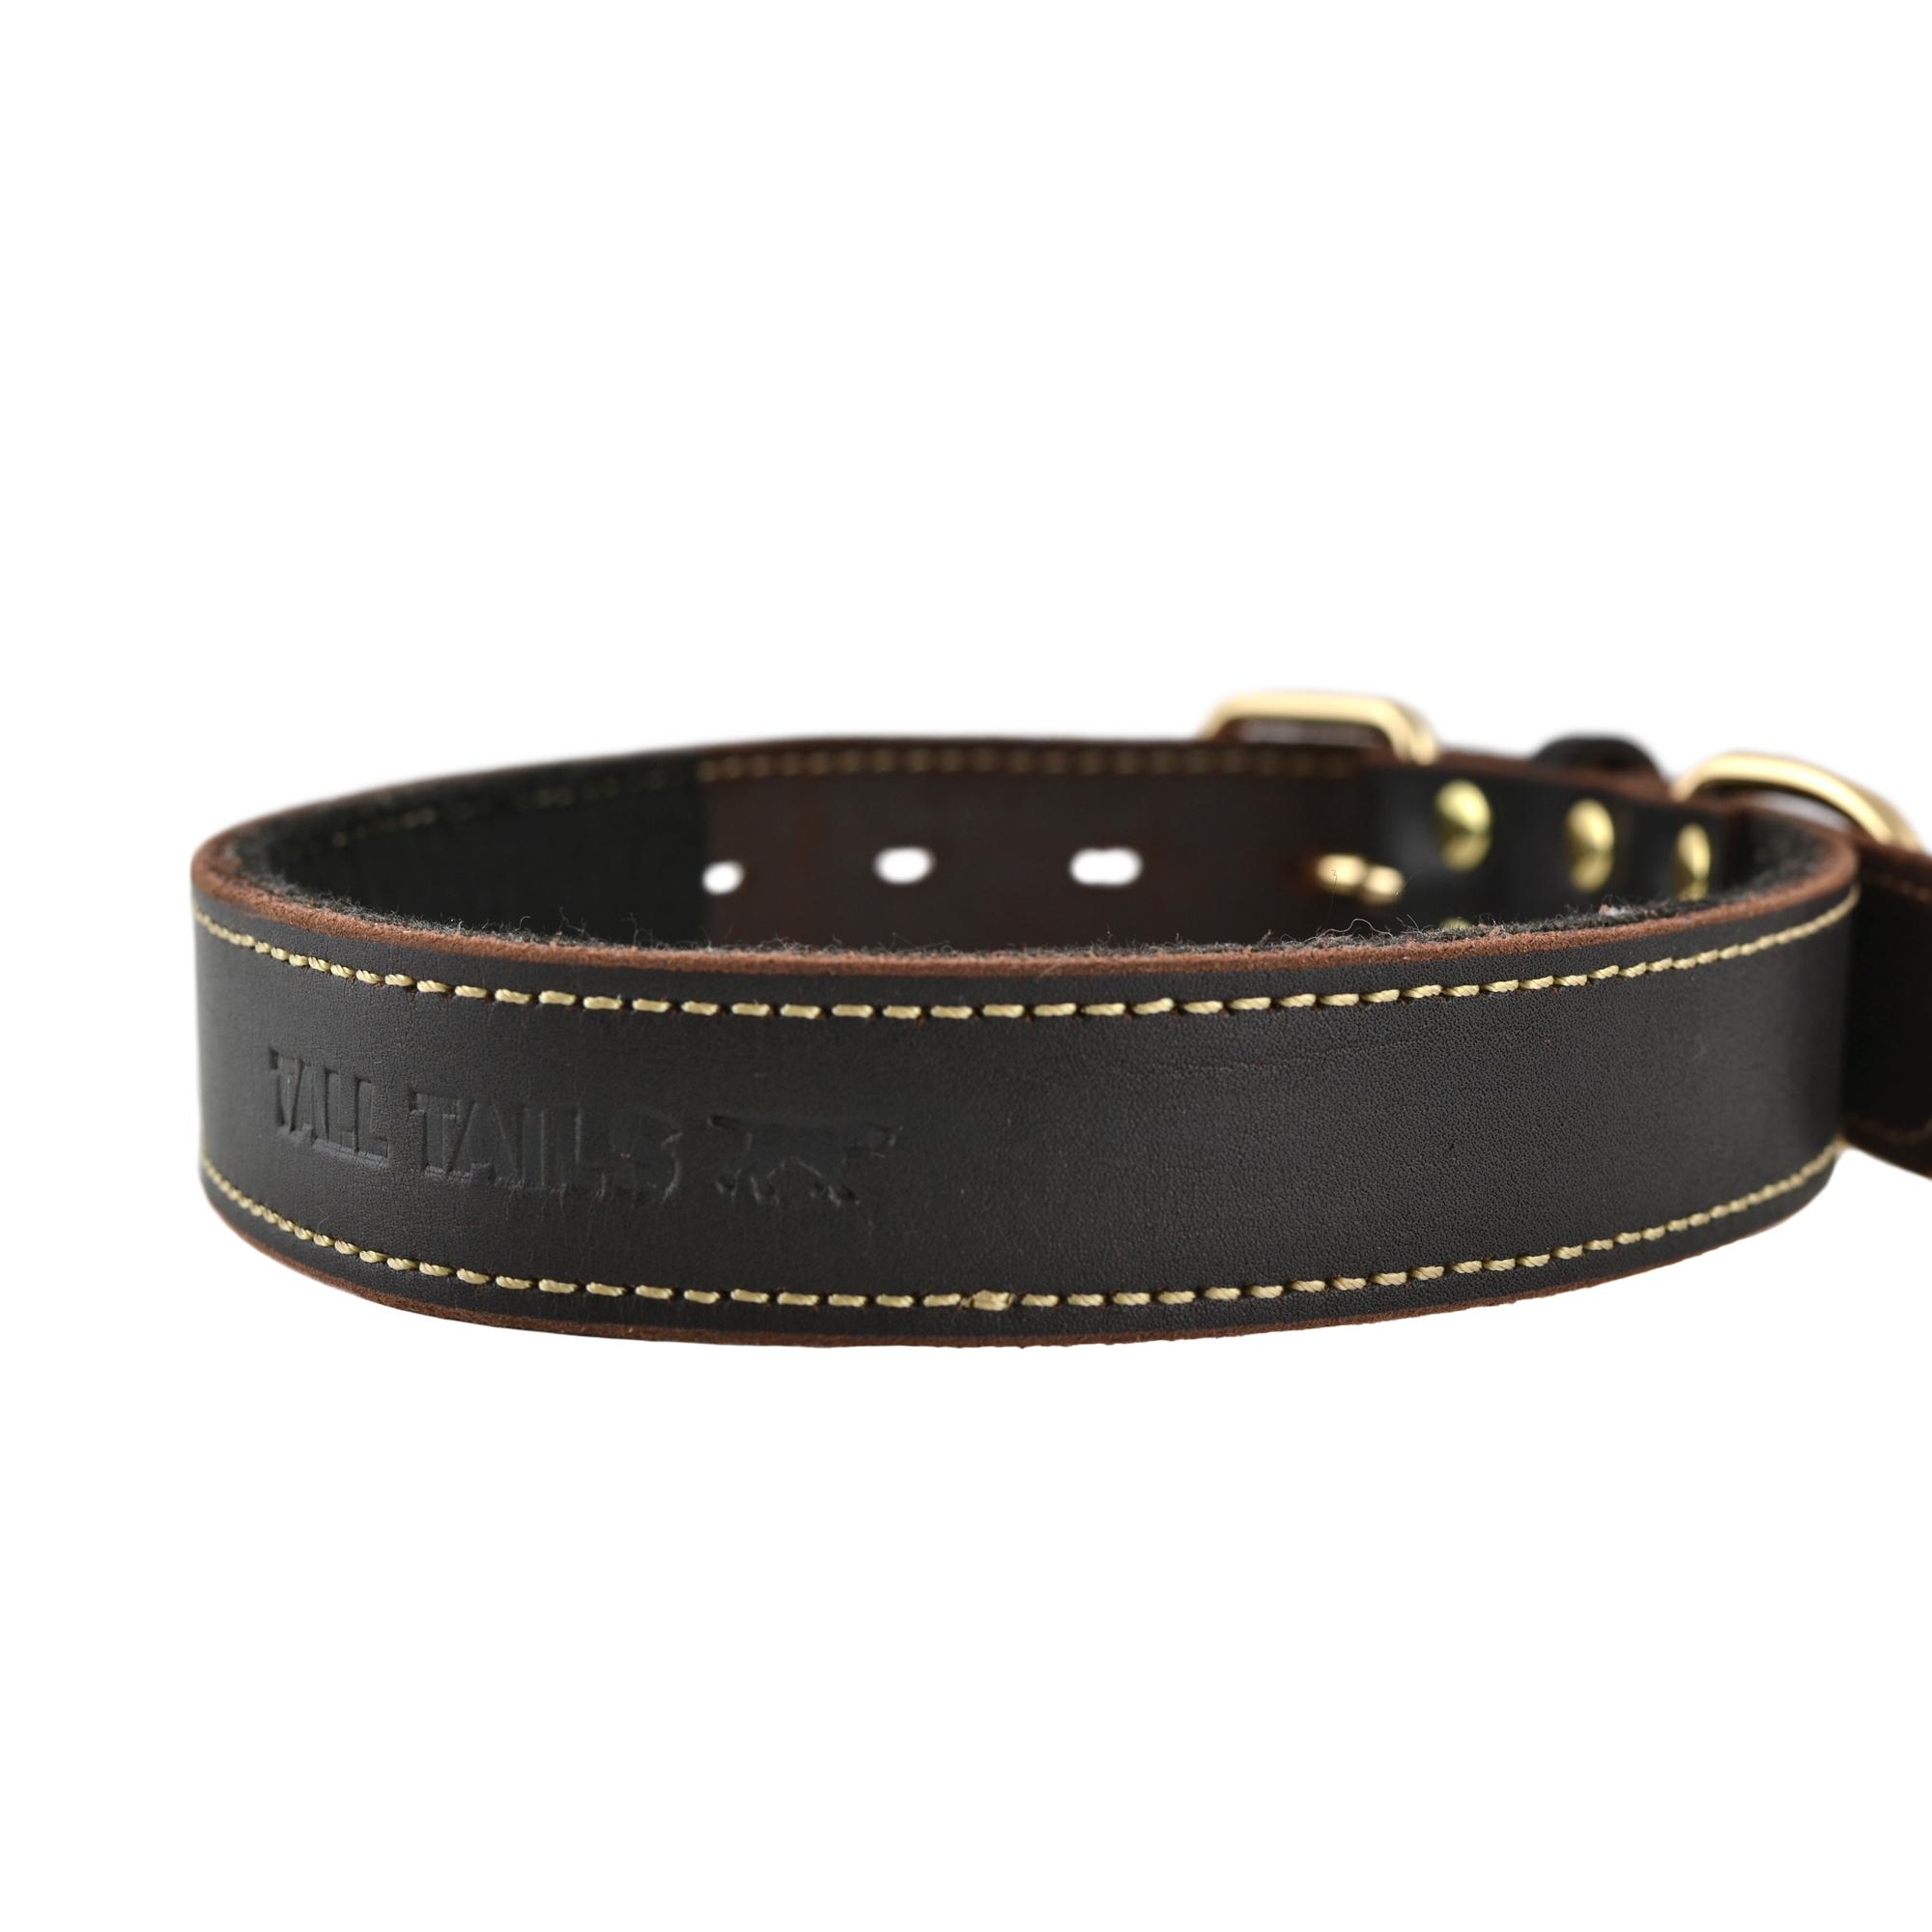 Tall Tails Genuine Leather Dog Collar, Small